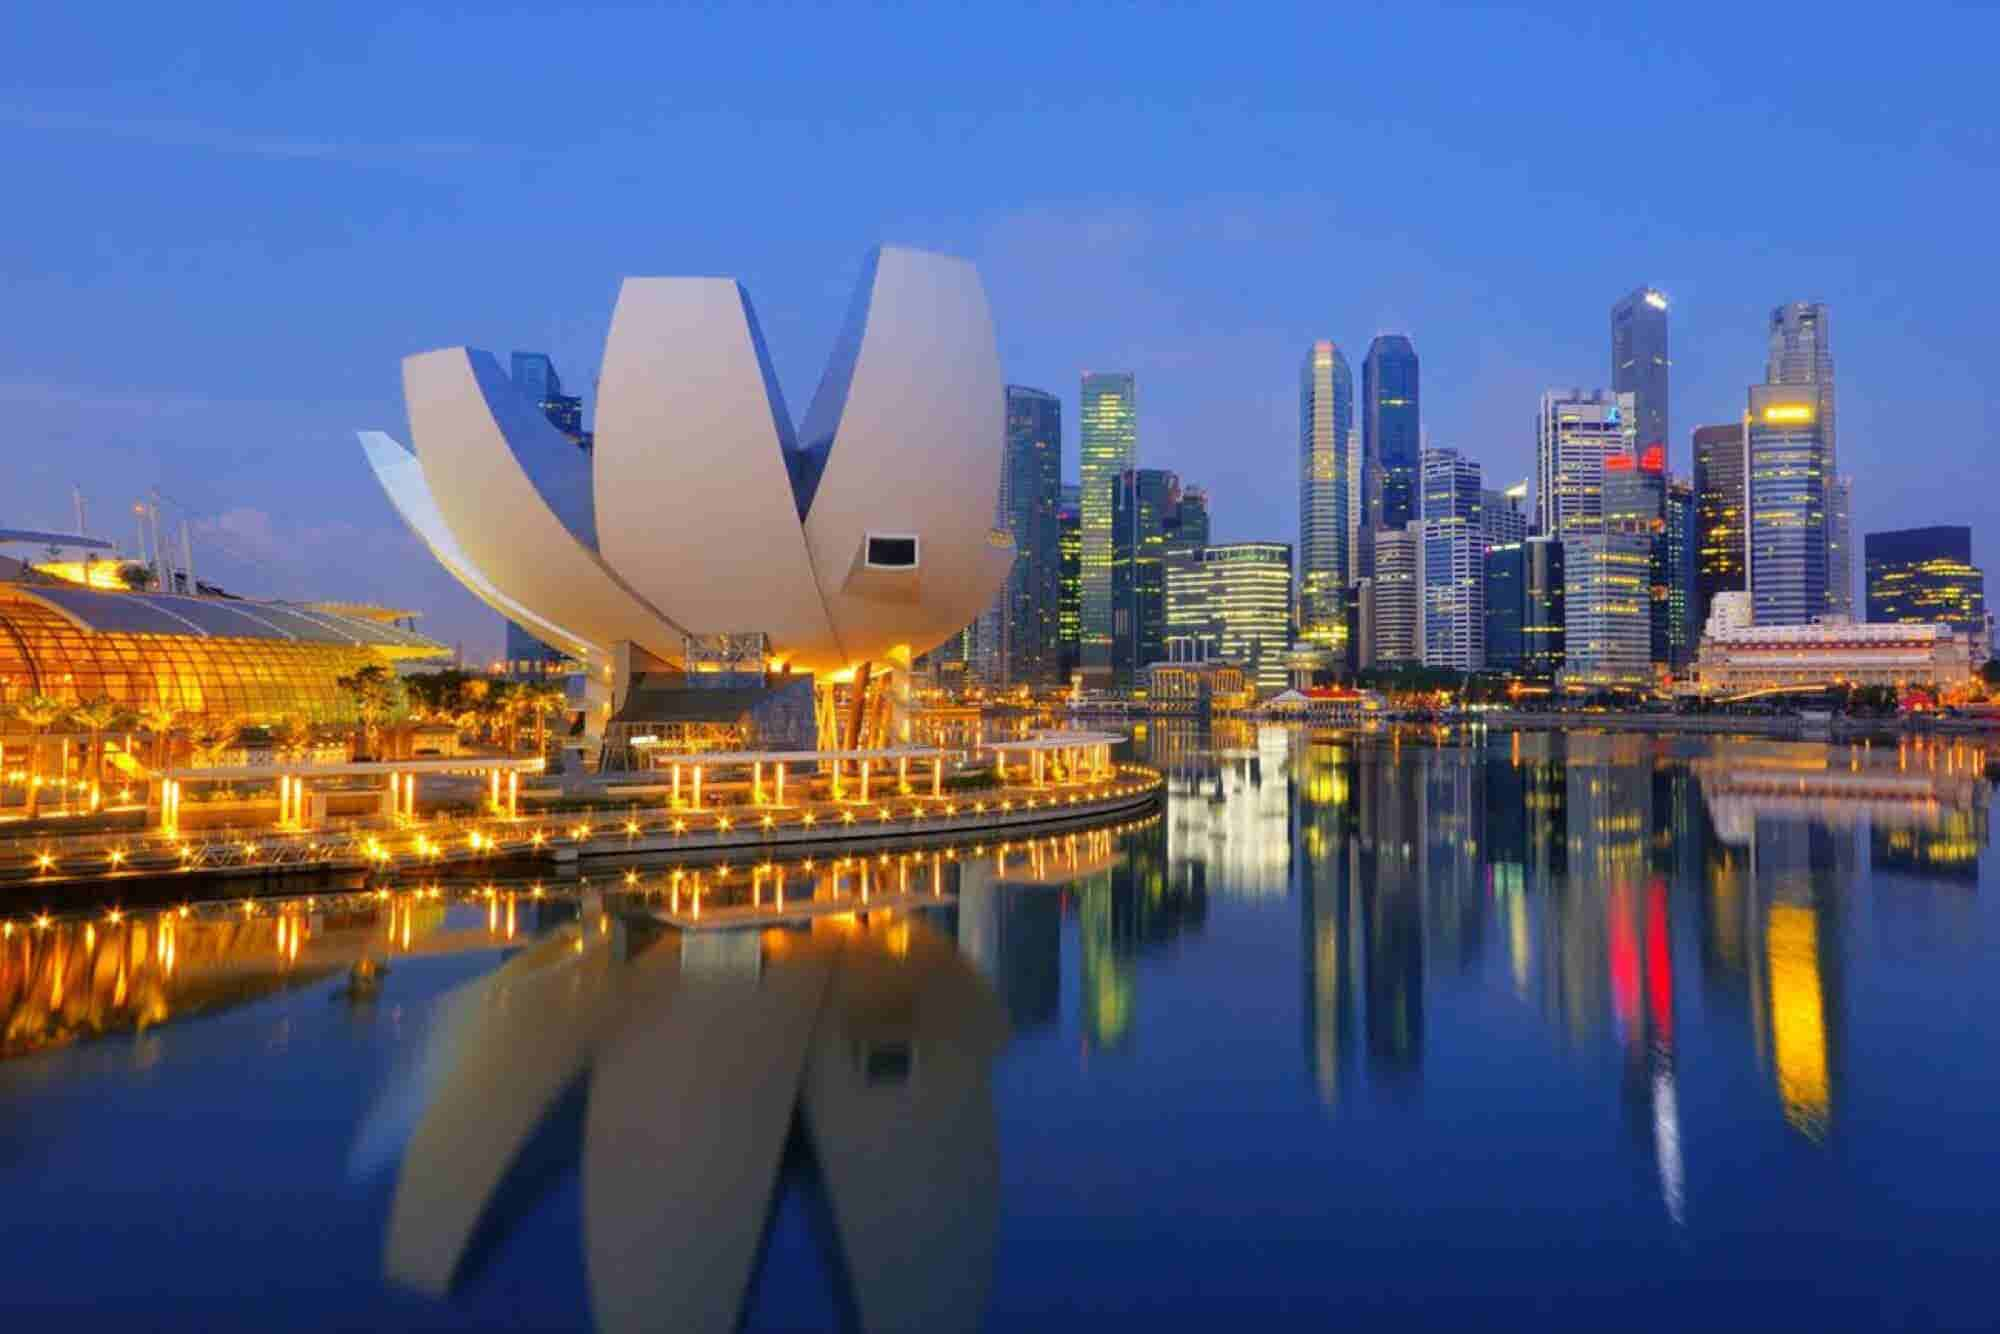 Developing Nations: Why Bahrain Should Not Follow The Singapore Model